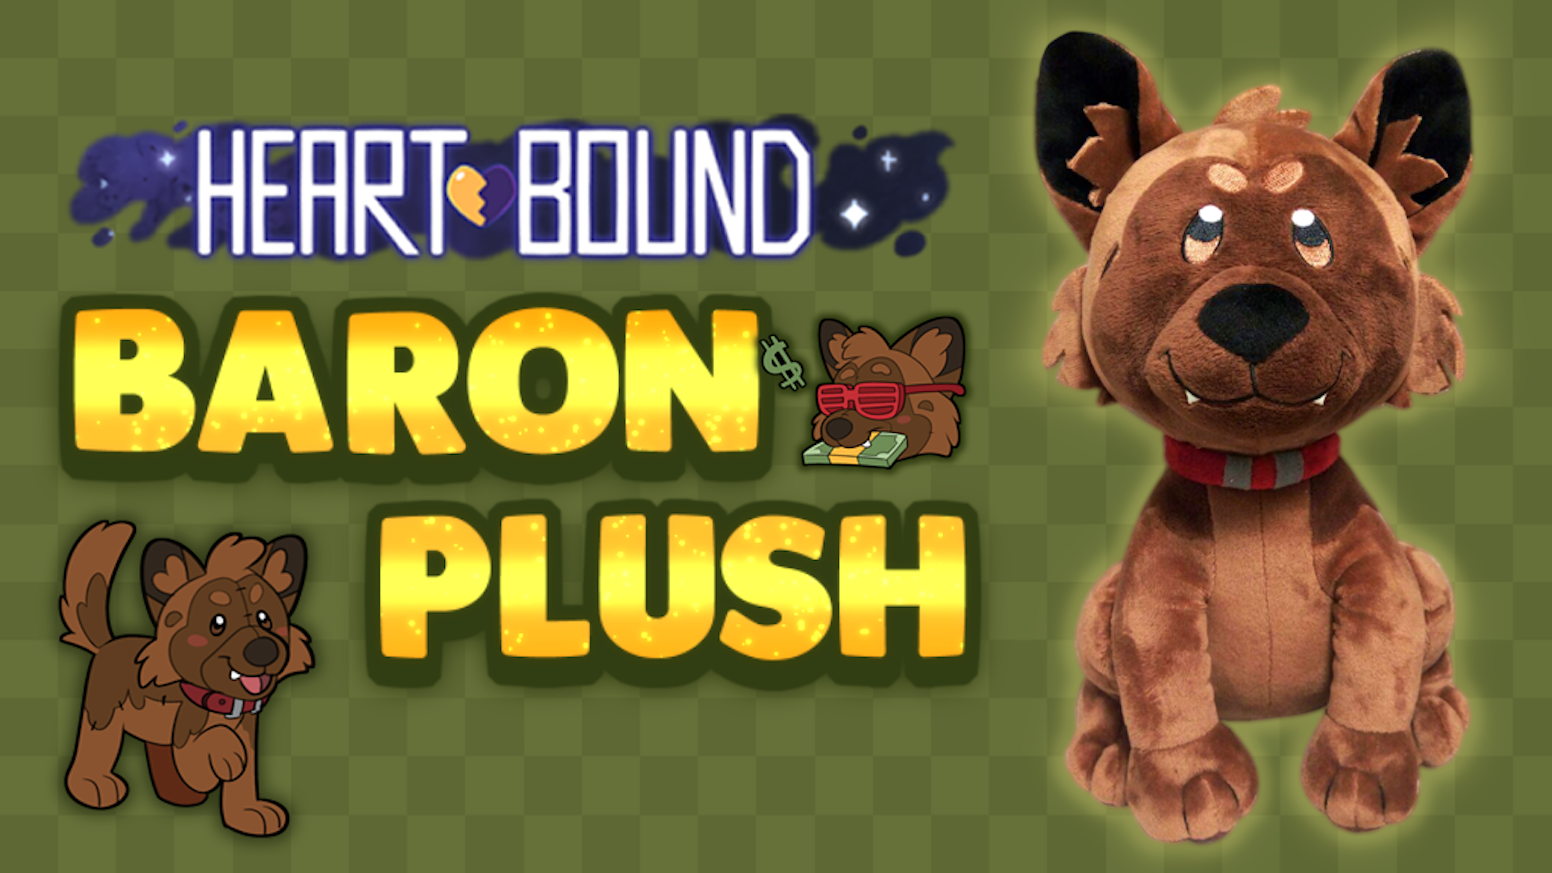 Your best friend now in plush!